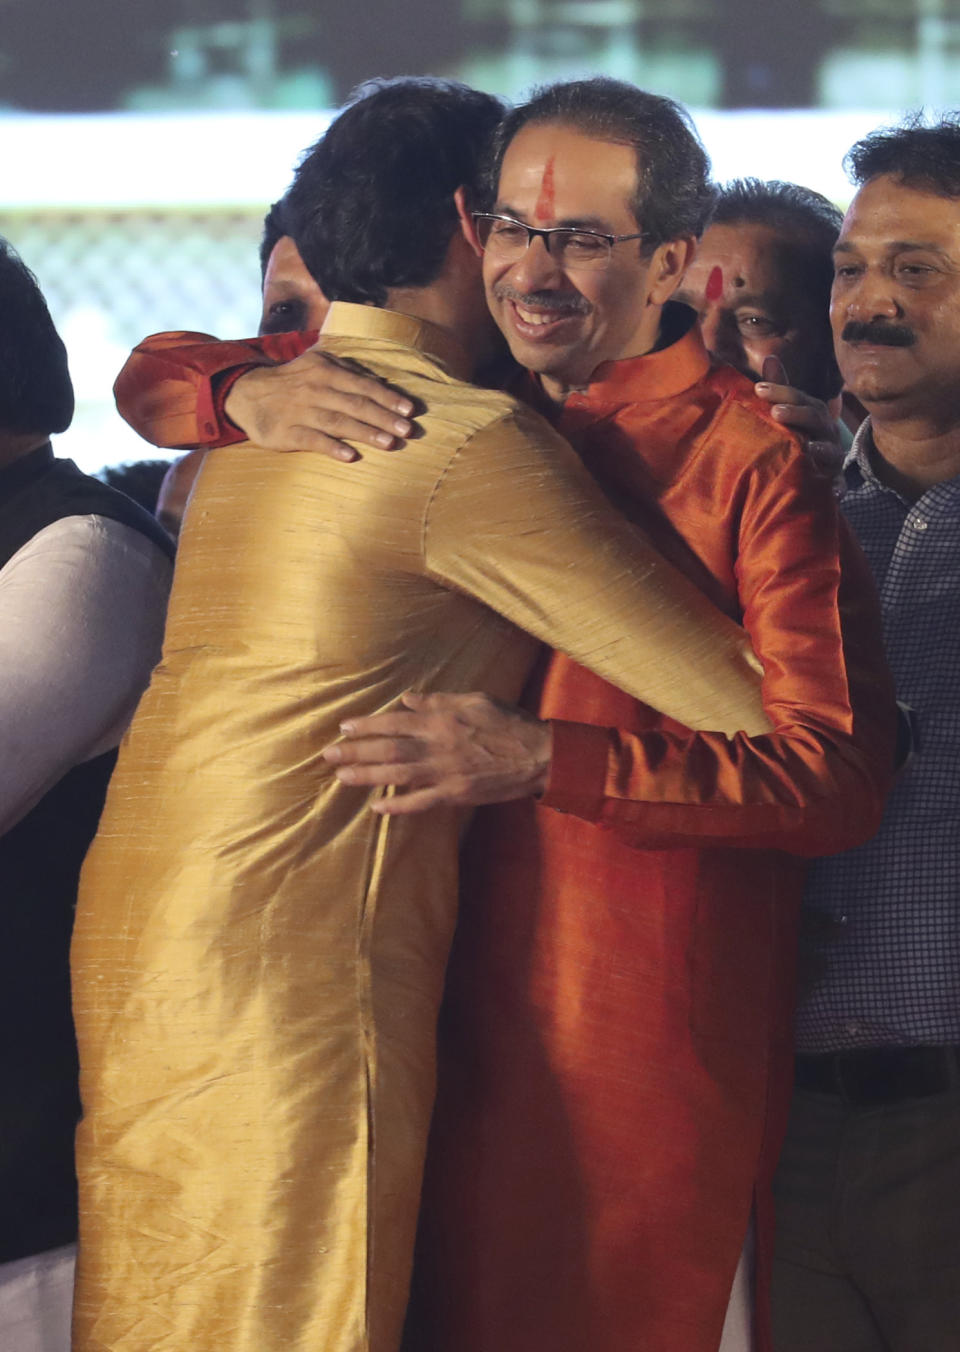 Shiv Sena party leader Uddhav Thackeray, right, is hugged by his son Aaditya Thackeray after he took oath as chief minister of Maharashtra state during a swearing-in-ceremony in Mumbai, Thursday, Nov. 28, 2019. Supporters of the Shiv Sena, Nationalist Congress Party (NCP) and the Congress party thronged Shivaji Park to watch their leaders take oath of office. (AP Photo/Rafiq Maqbool)